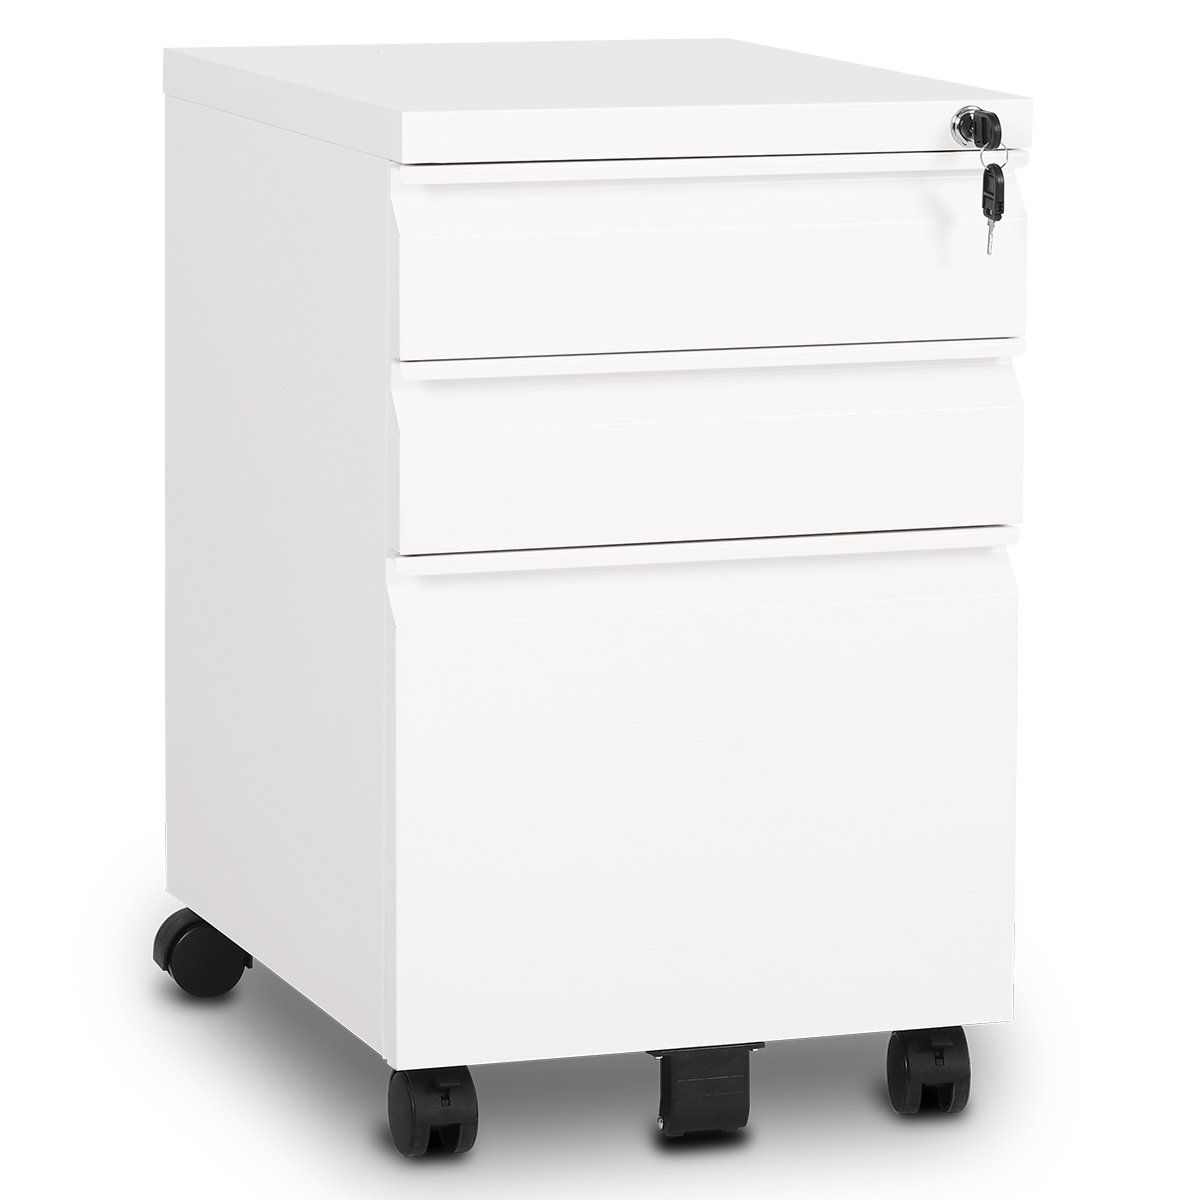 DEVAISE 3-Drawer Mobile File Cabinet with Lock Fully Assembled Except Casters,Black HUIKO988Y HTRE46GF